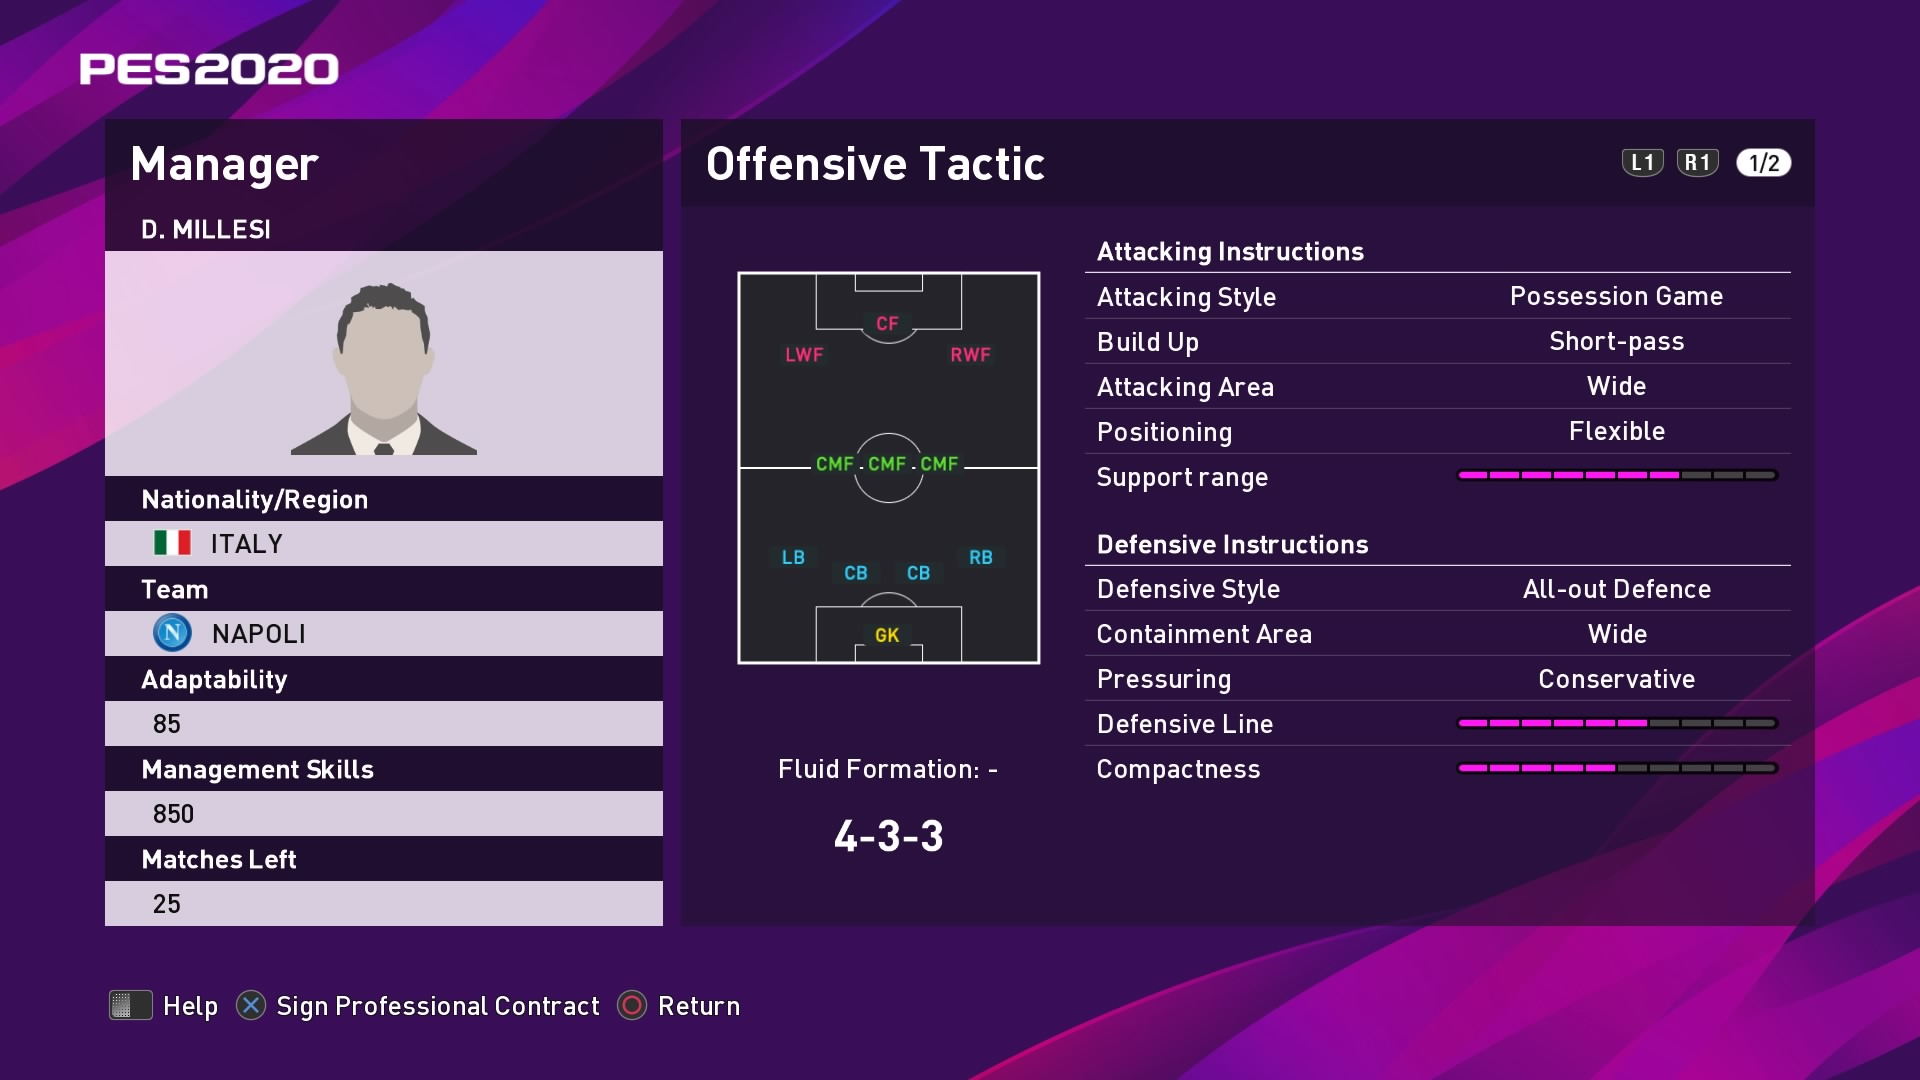 D. Millesi (2) (Carlo Ancelotti) Offensive Tactic in PES 2020 myClub